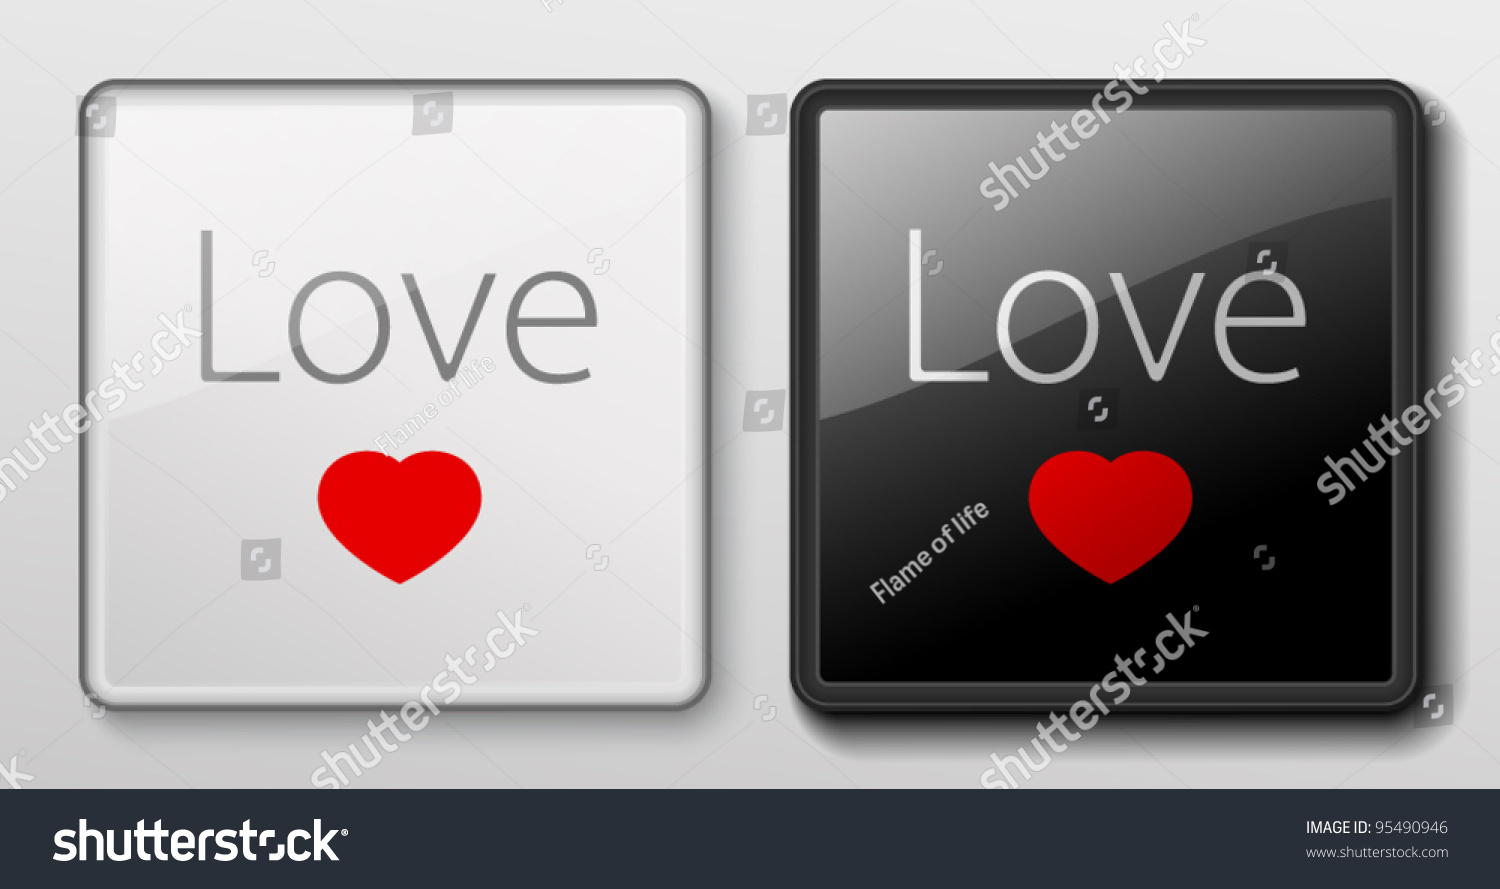 Two buttons love symbol red heart stock vector 95490946 shutterstock two buttons with love symbol red heart in black and white colors useful biocorpaavc Images